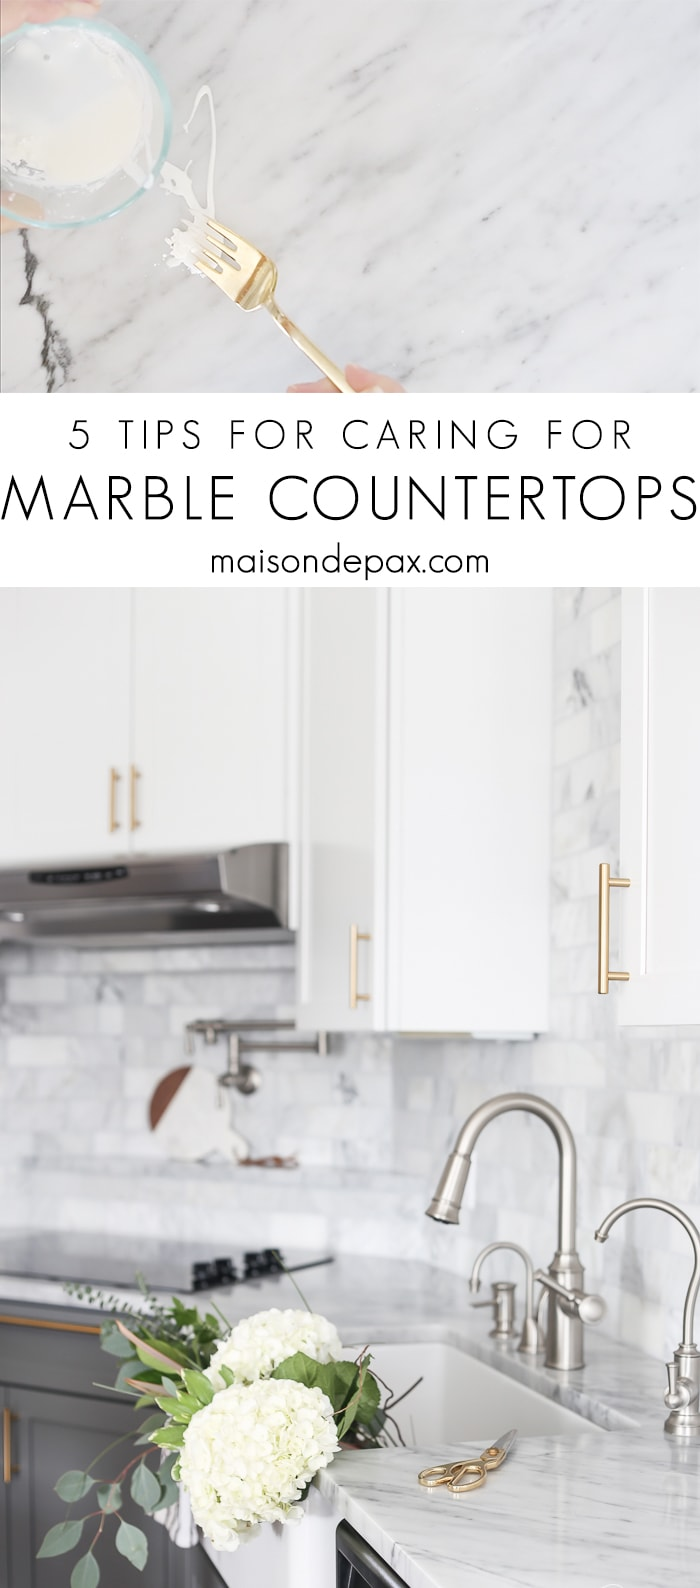 5 tips for caring for marble counters: Wondering how to care for marble counters?  Don't miss these 5 tips on caring for marble countertops, including details on sealing marble counters, removing stains from marble, cleaning marble countertops, and avoiding scratches. #marble #marblecounters #marblecountertops #marblekitchen #marblecare #kitchencounters #kitchencountertops #carraramarble #cleaningmarble #marblesealer